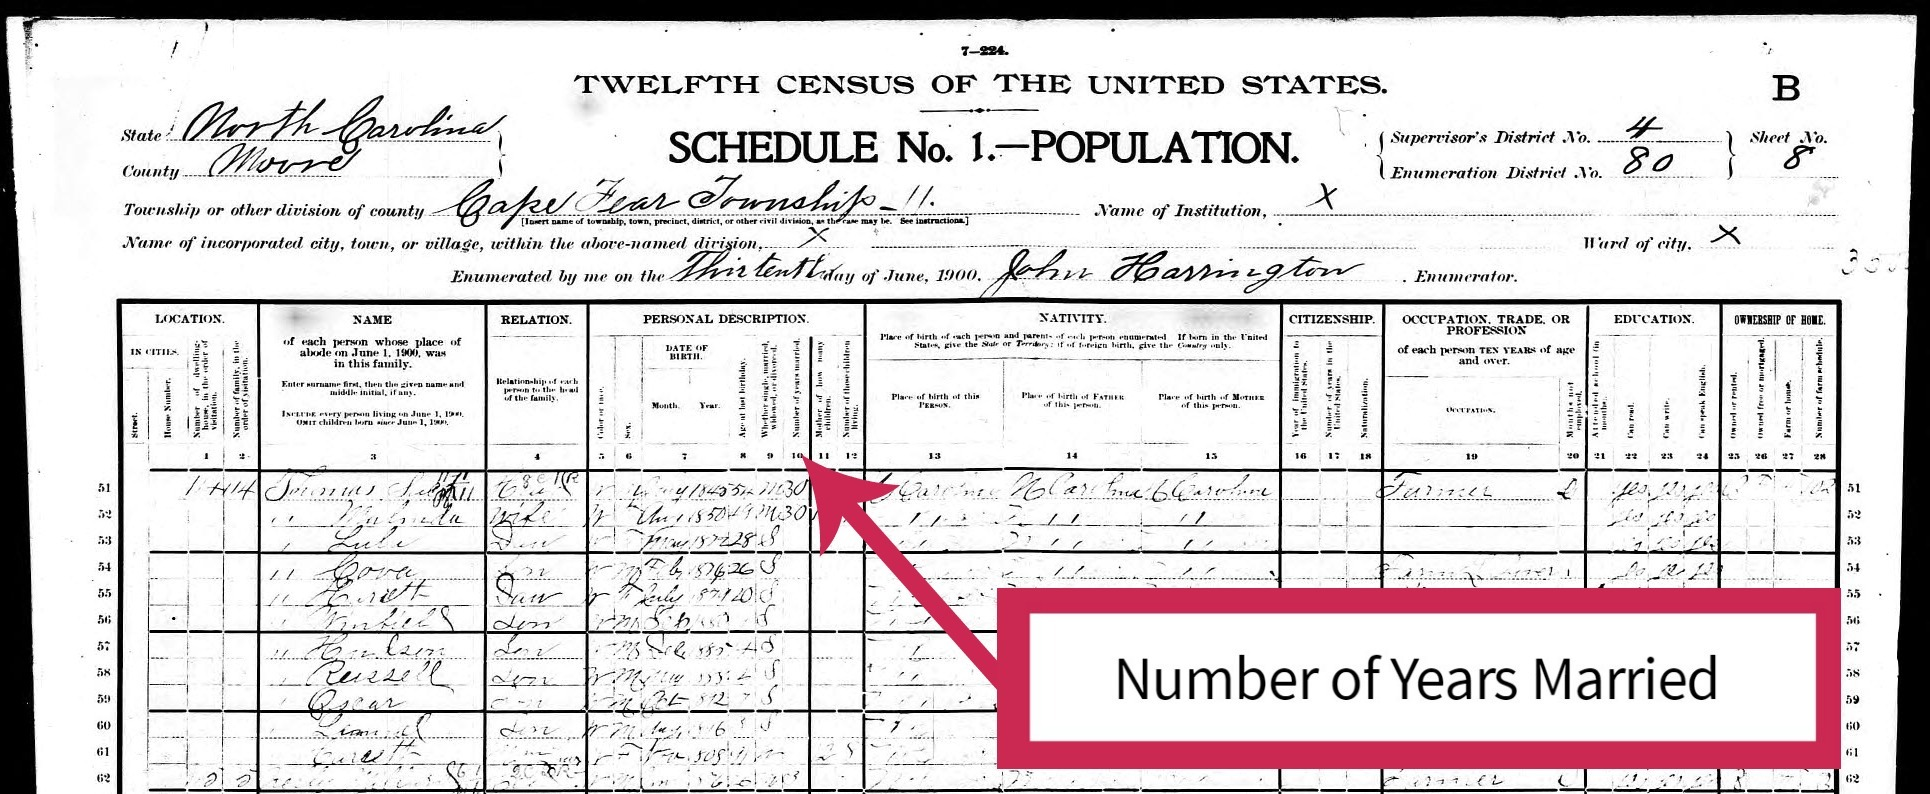 1900 Census Example of Number of Years Married - Column 10